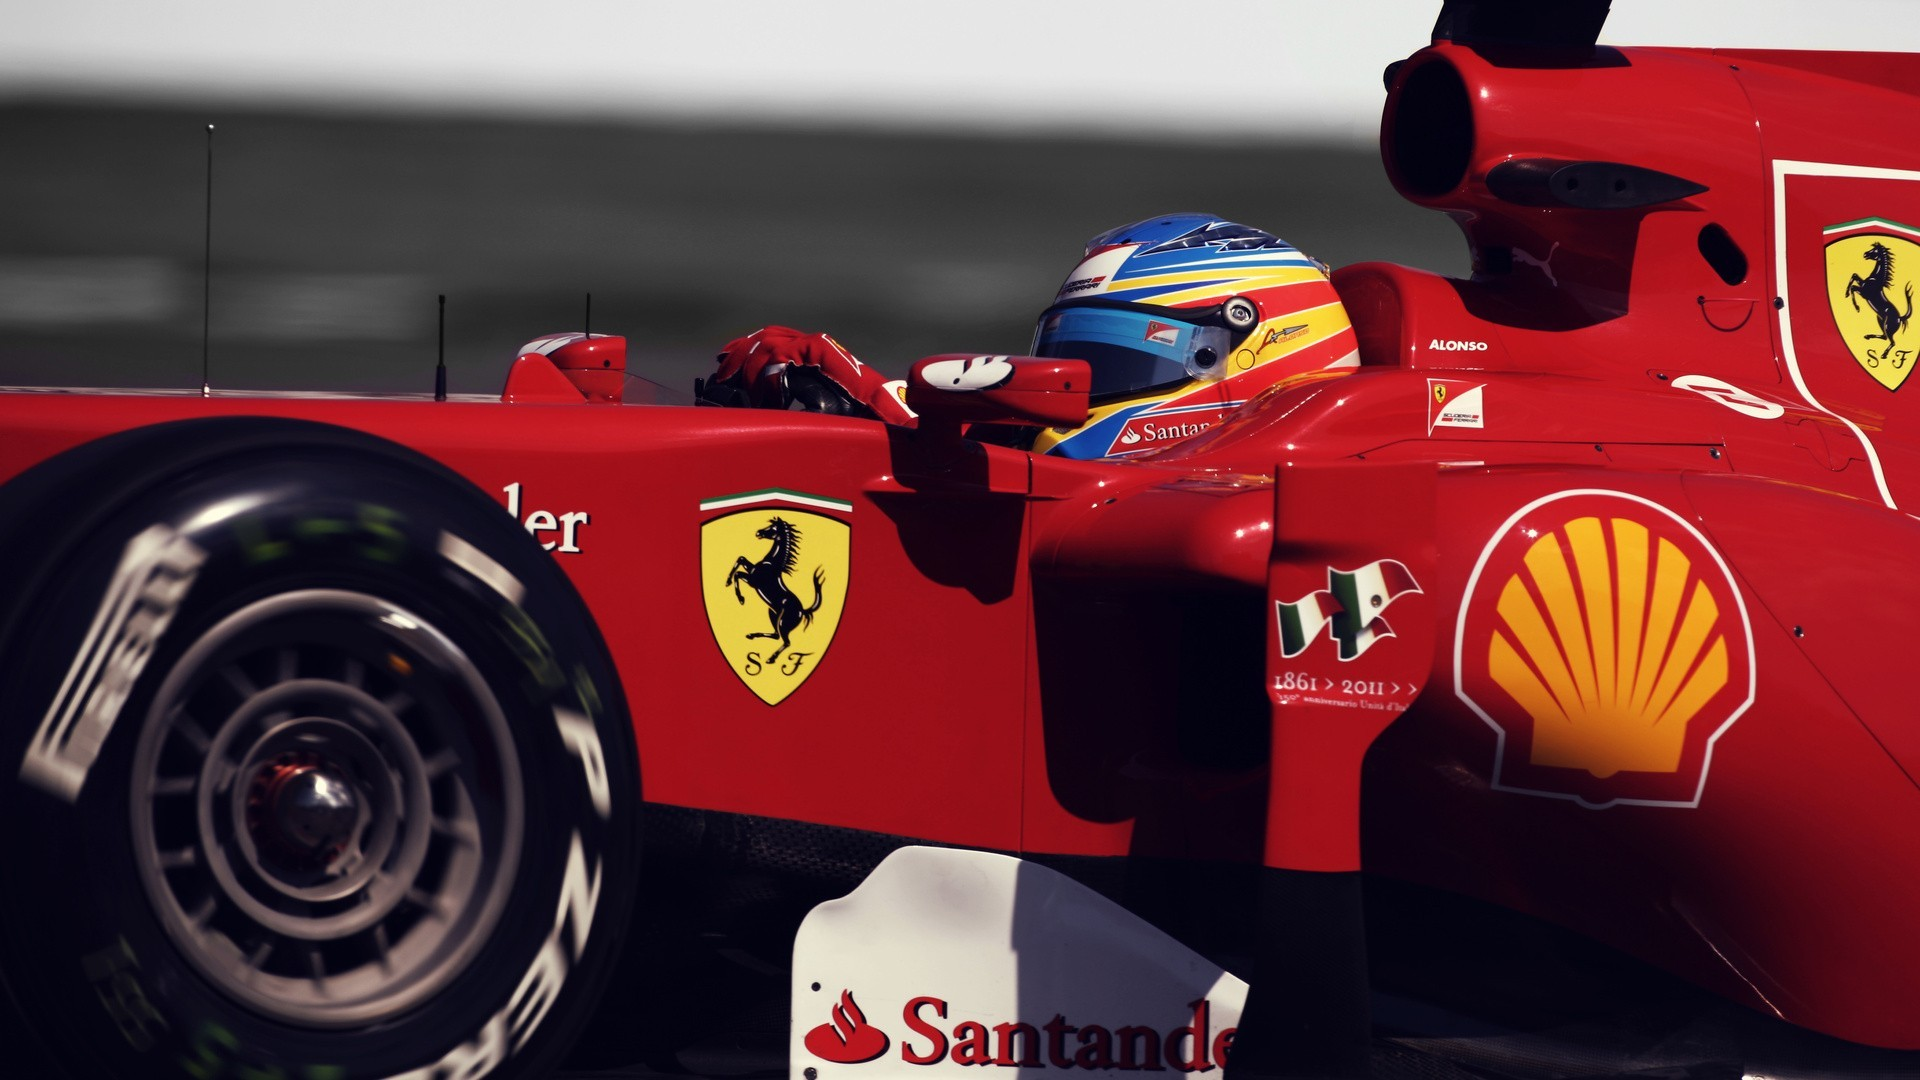 Formula 1 Scuderia Ferrari Wallpapers Hd Desktop And Mobile Backgrounds